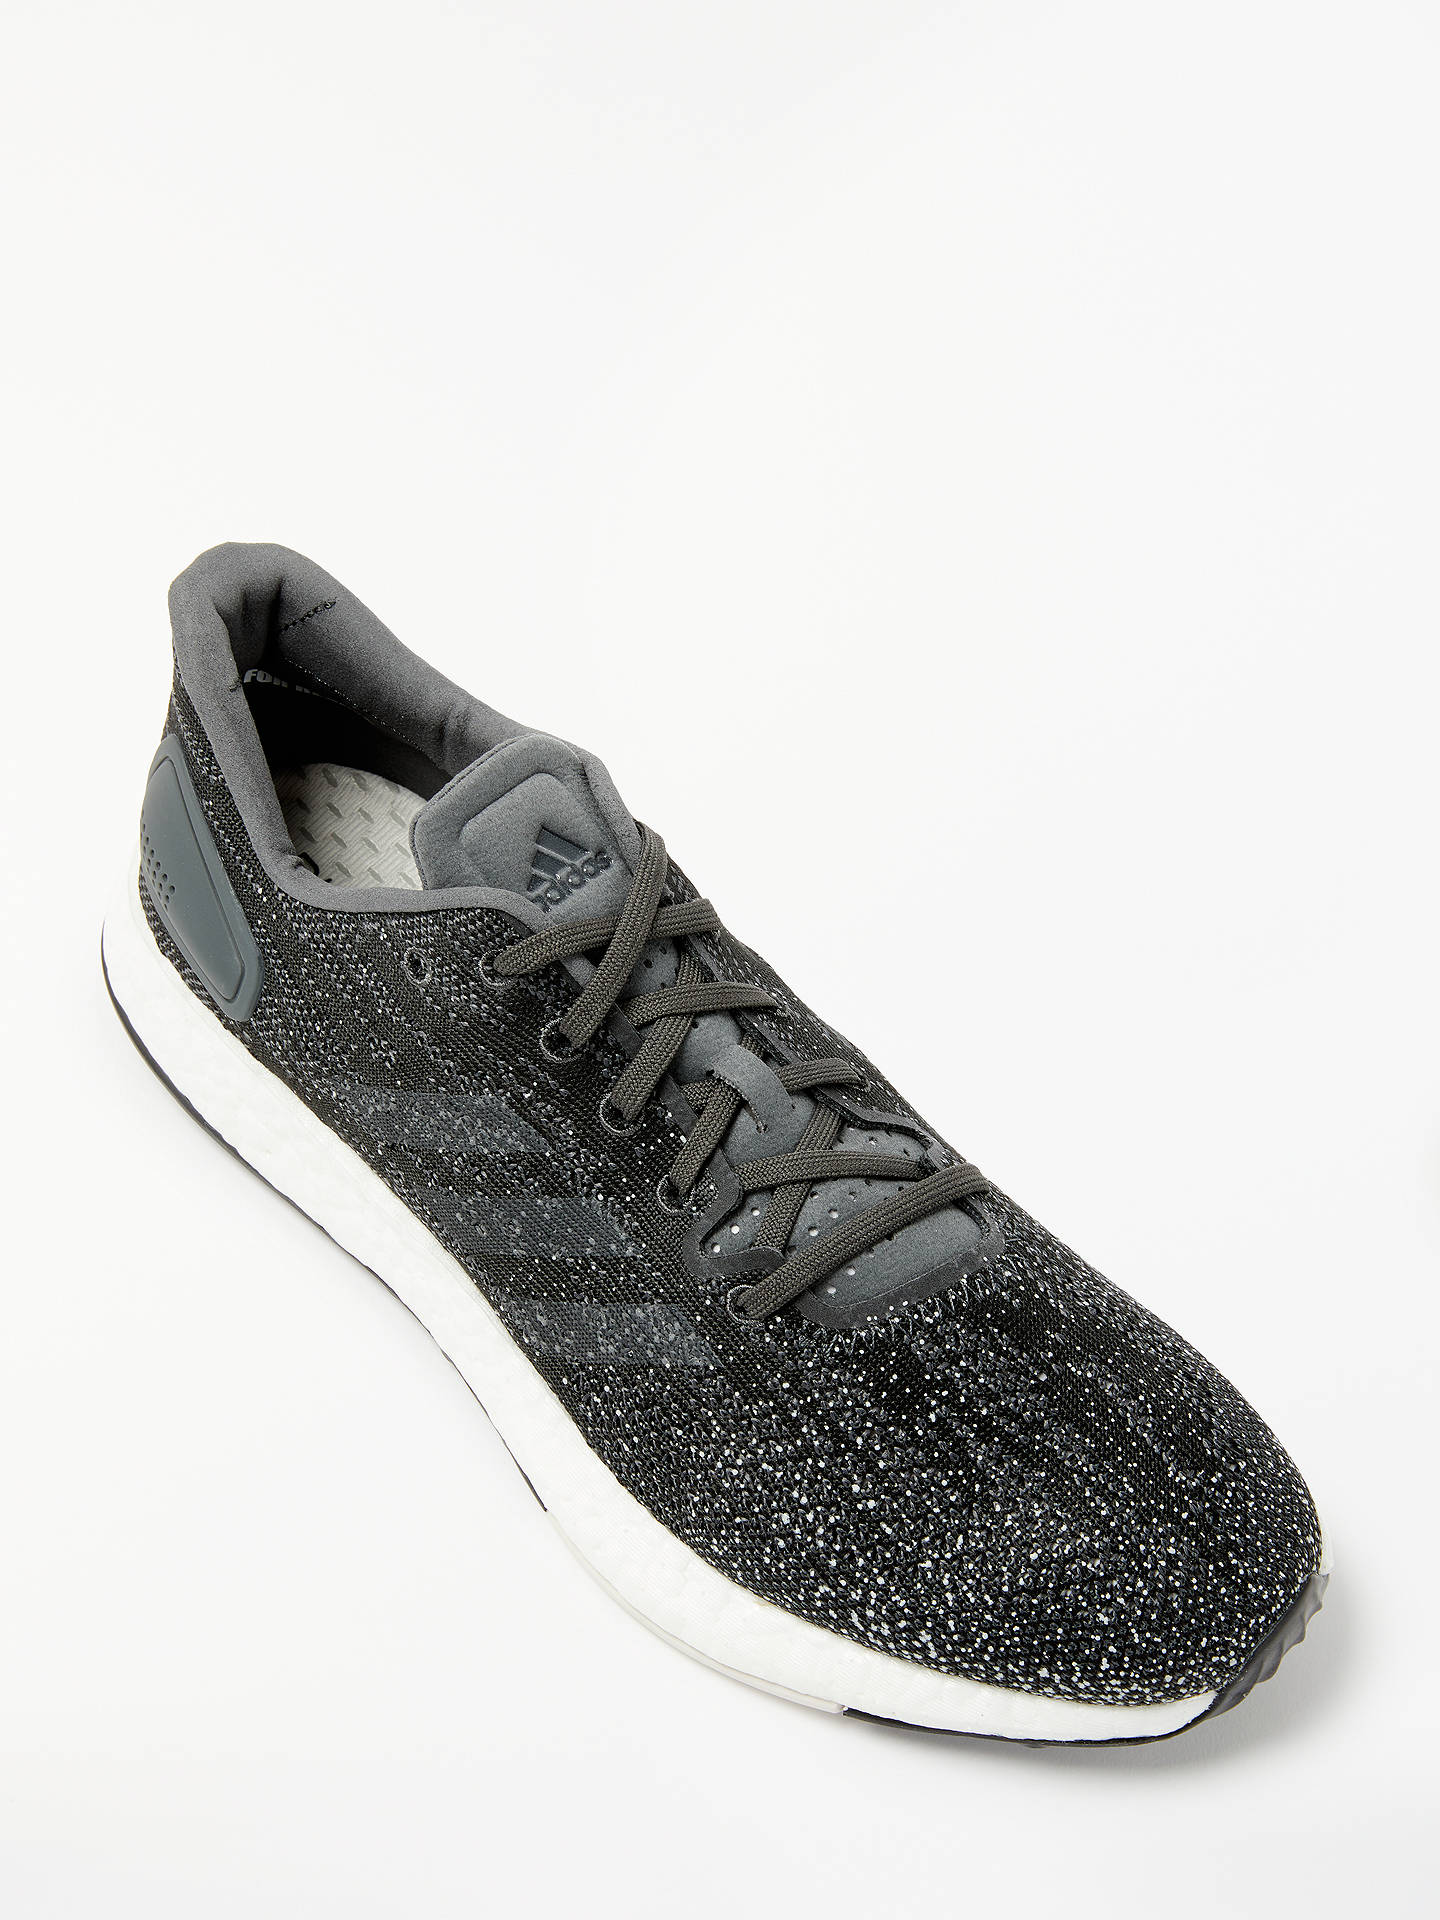 b83941a8b0b40 ... Buy adidas PureBoost DPR Men s Running Shoes